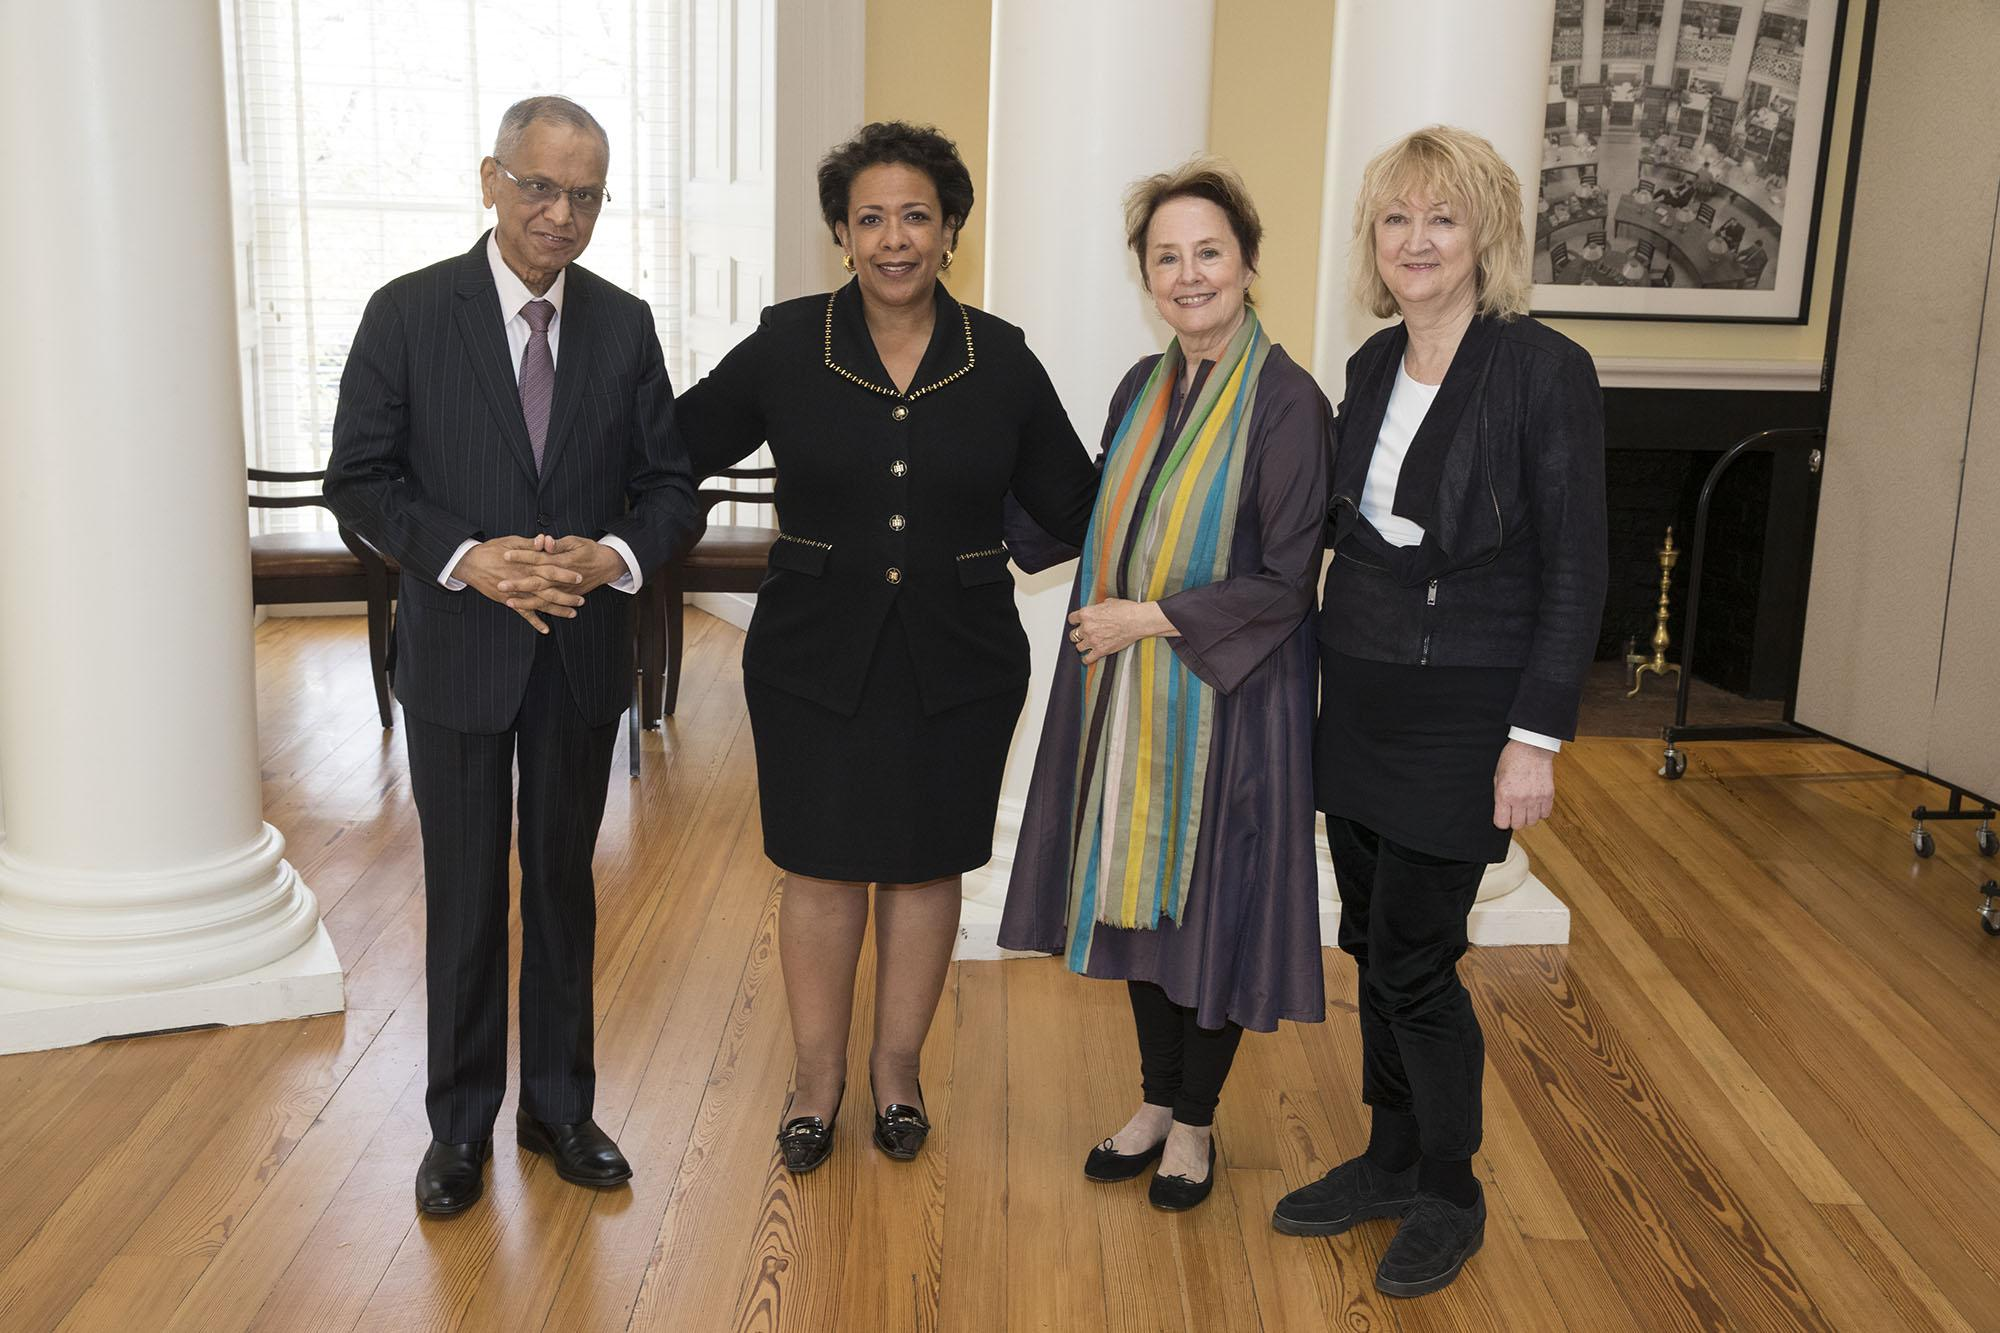 Left to right, Thomas Jefferson Foundation Medalists N.R. Narayana Murthy, Loretta Lynch, Alice Waters and Yvonne Farrell. Not pictured: Shelley McNamara. (Photo by Dan Addison, University Communications)